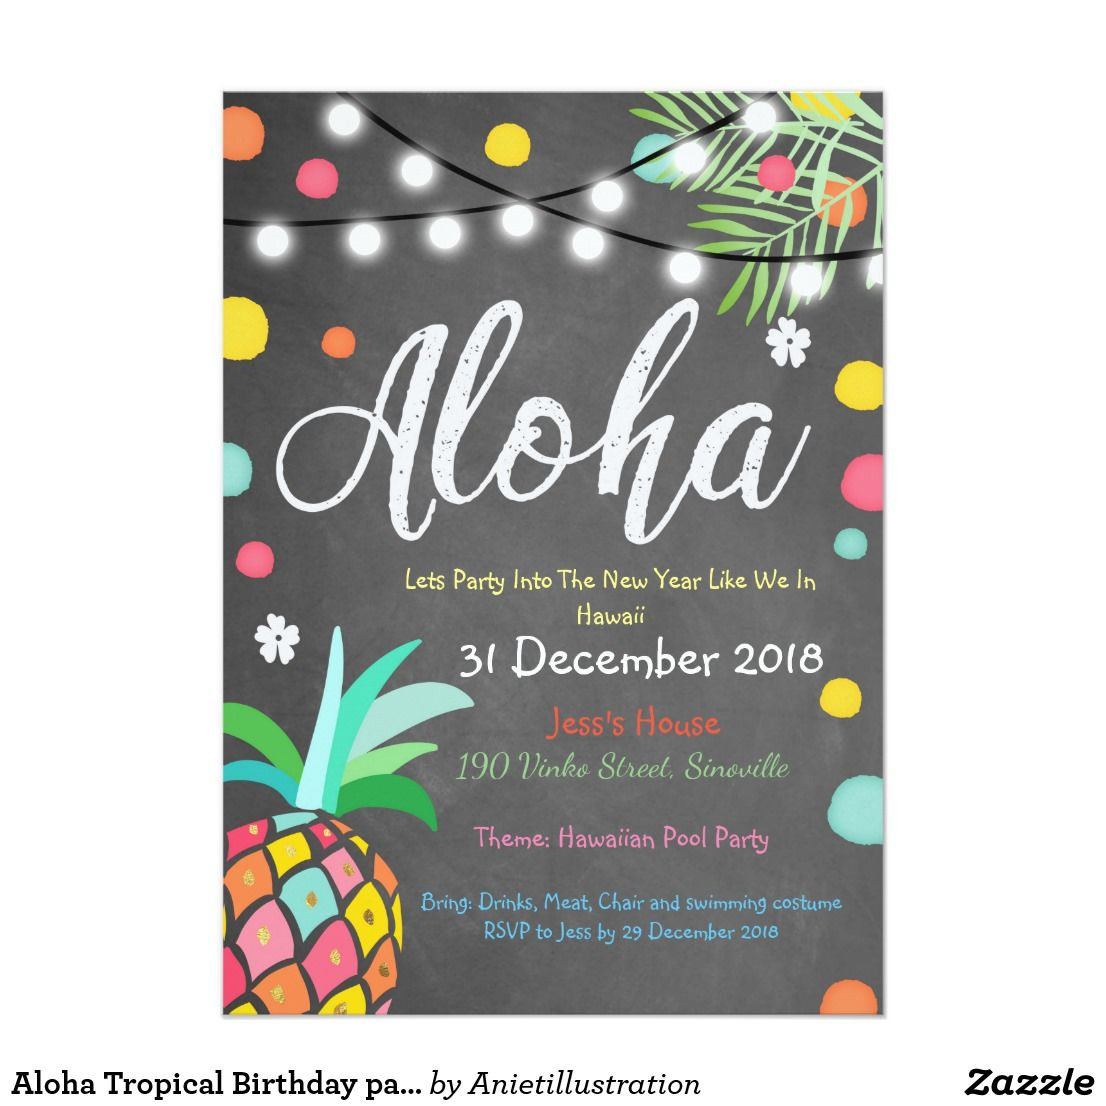 Aloha Tropical Birthday party invite Hawaii Luau | Zazzle.com #tropicalbirthdayparty